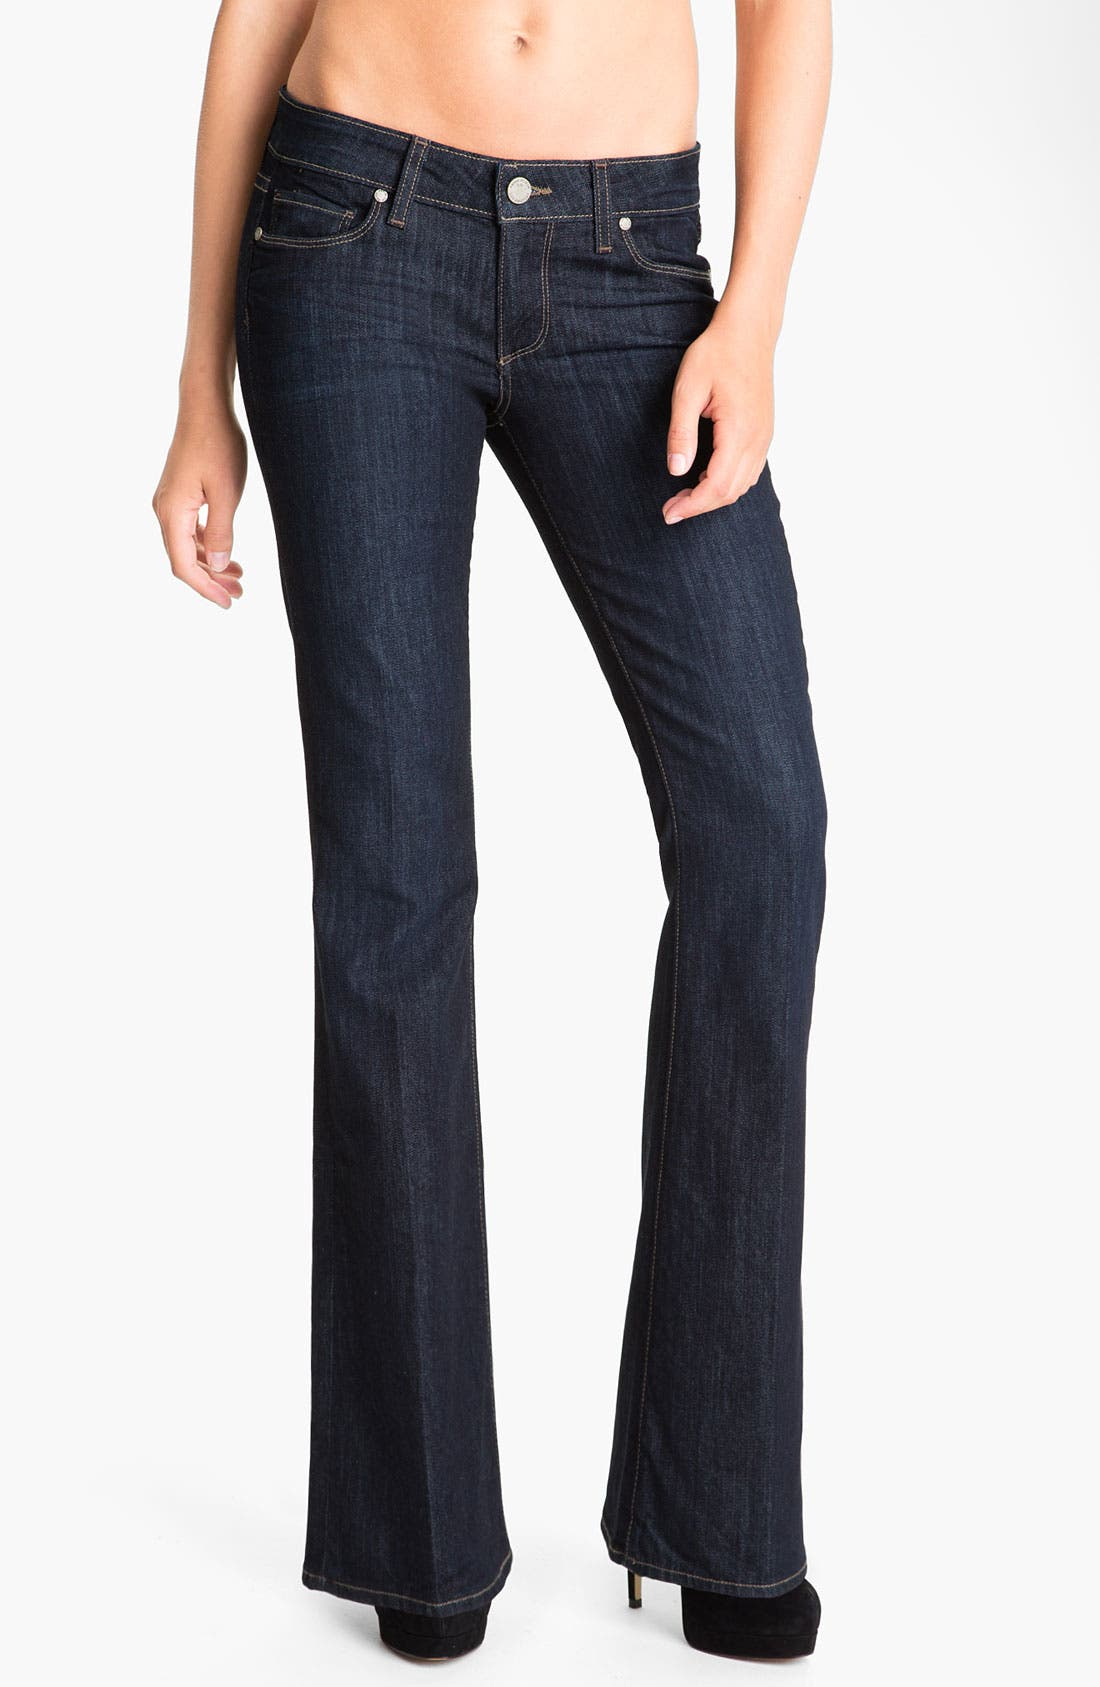 Main Image - Paige Denim 'Skyline' Bootcut Jeans (Dream) (Petite)